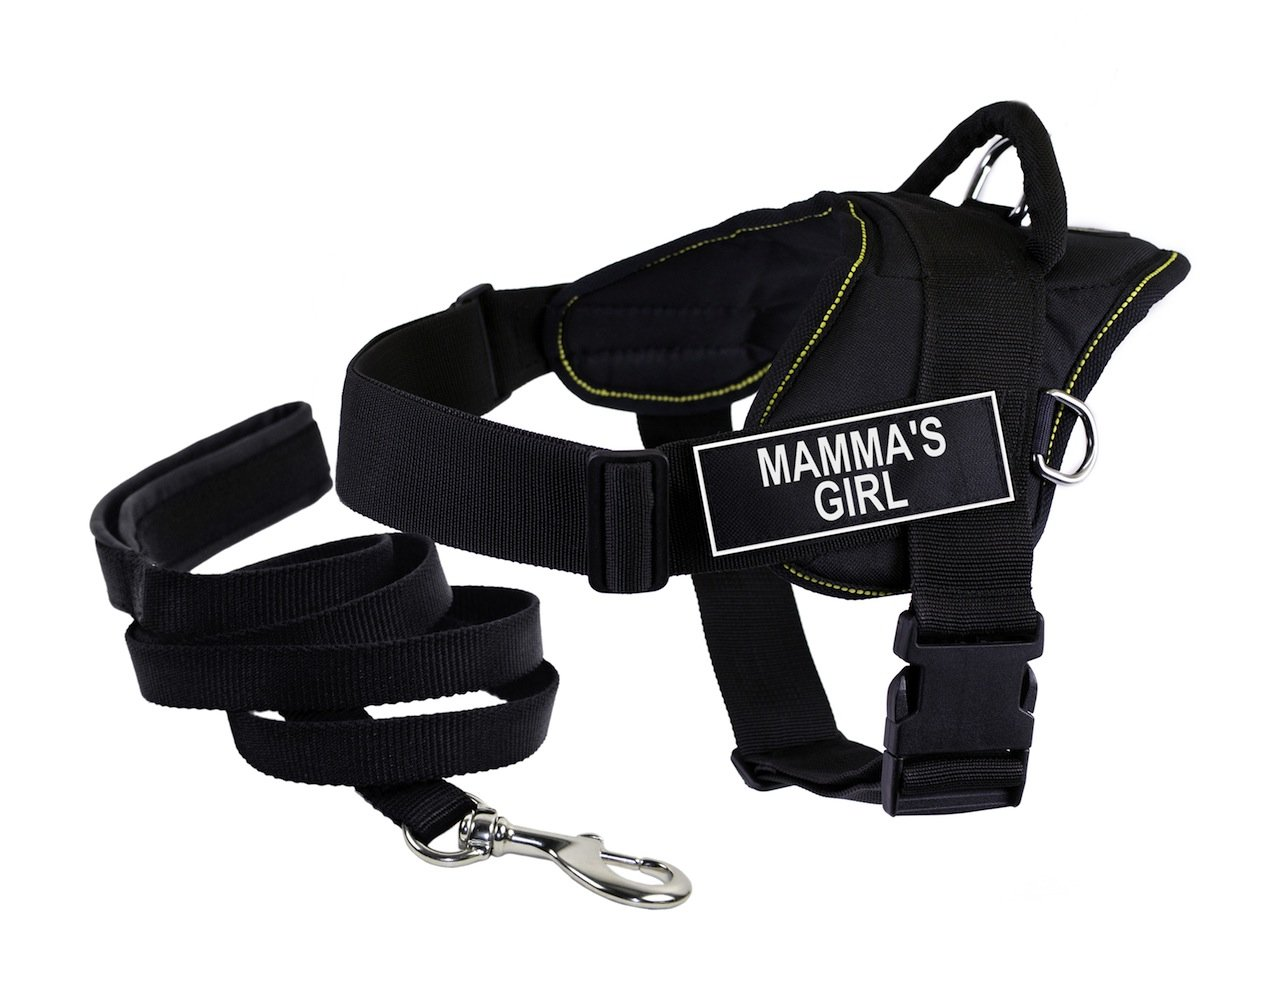 Dean & Tyler's DT Fun MAMMA'S GIRL Harness, Medium, with 6 ft Padded Puppy Leash.